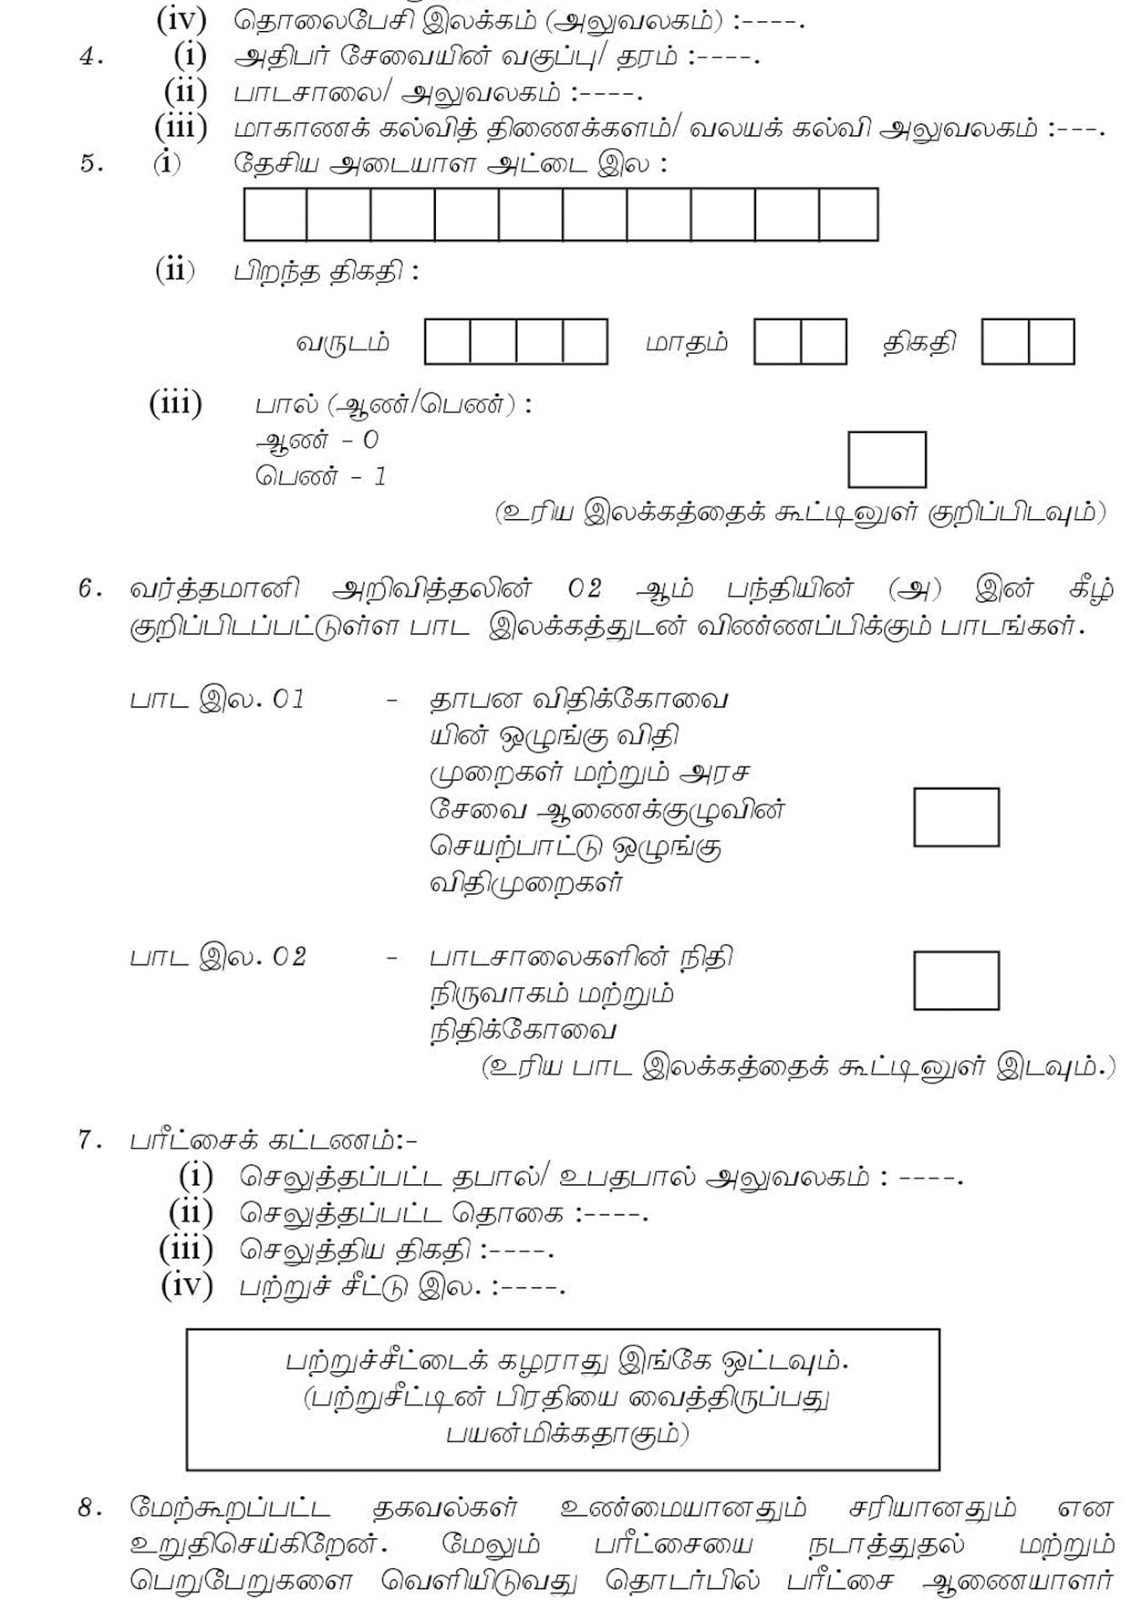 principal-service-cl-3-2017-6 Job Application Format In Sinhala Pdf on letter format sample, pizza hut, panera bread, print out, printable basic, dunkin donuts,